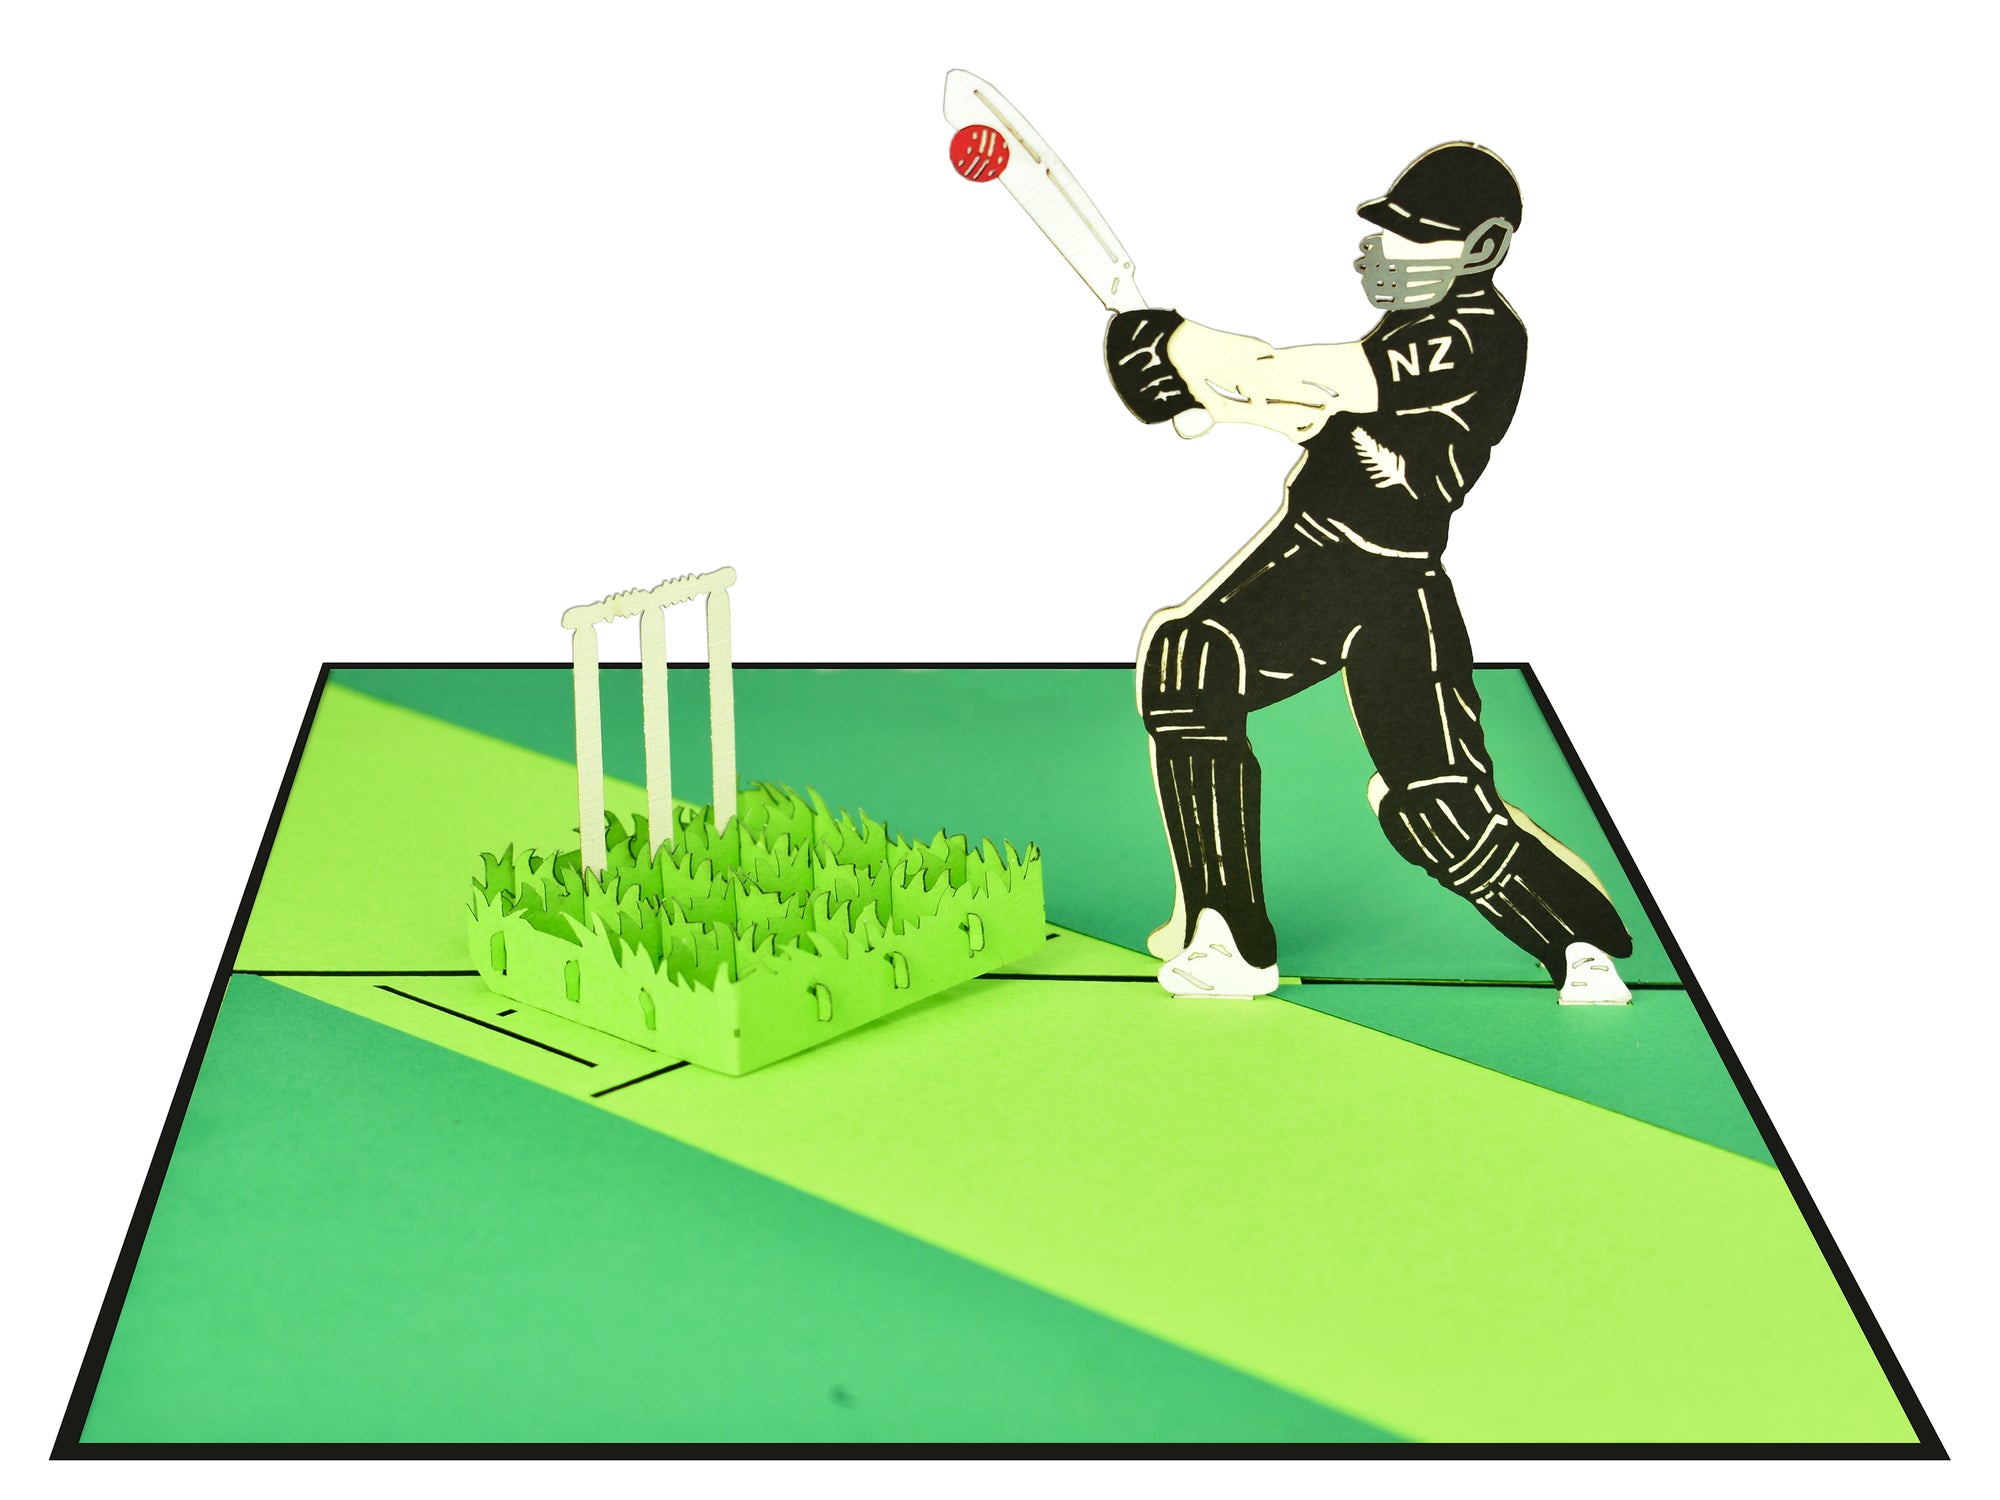 New Zealand Blackcap Cricket 3D Creative Pop Up Card